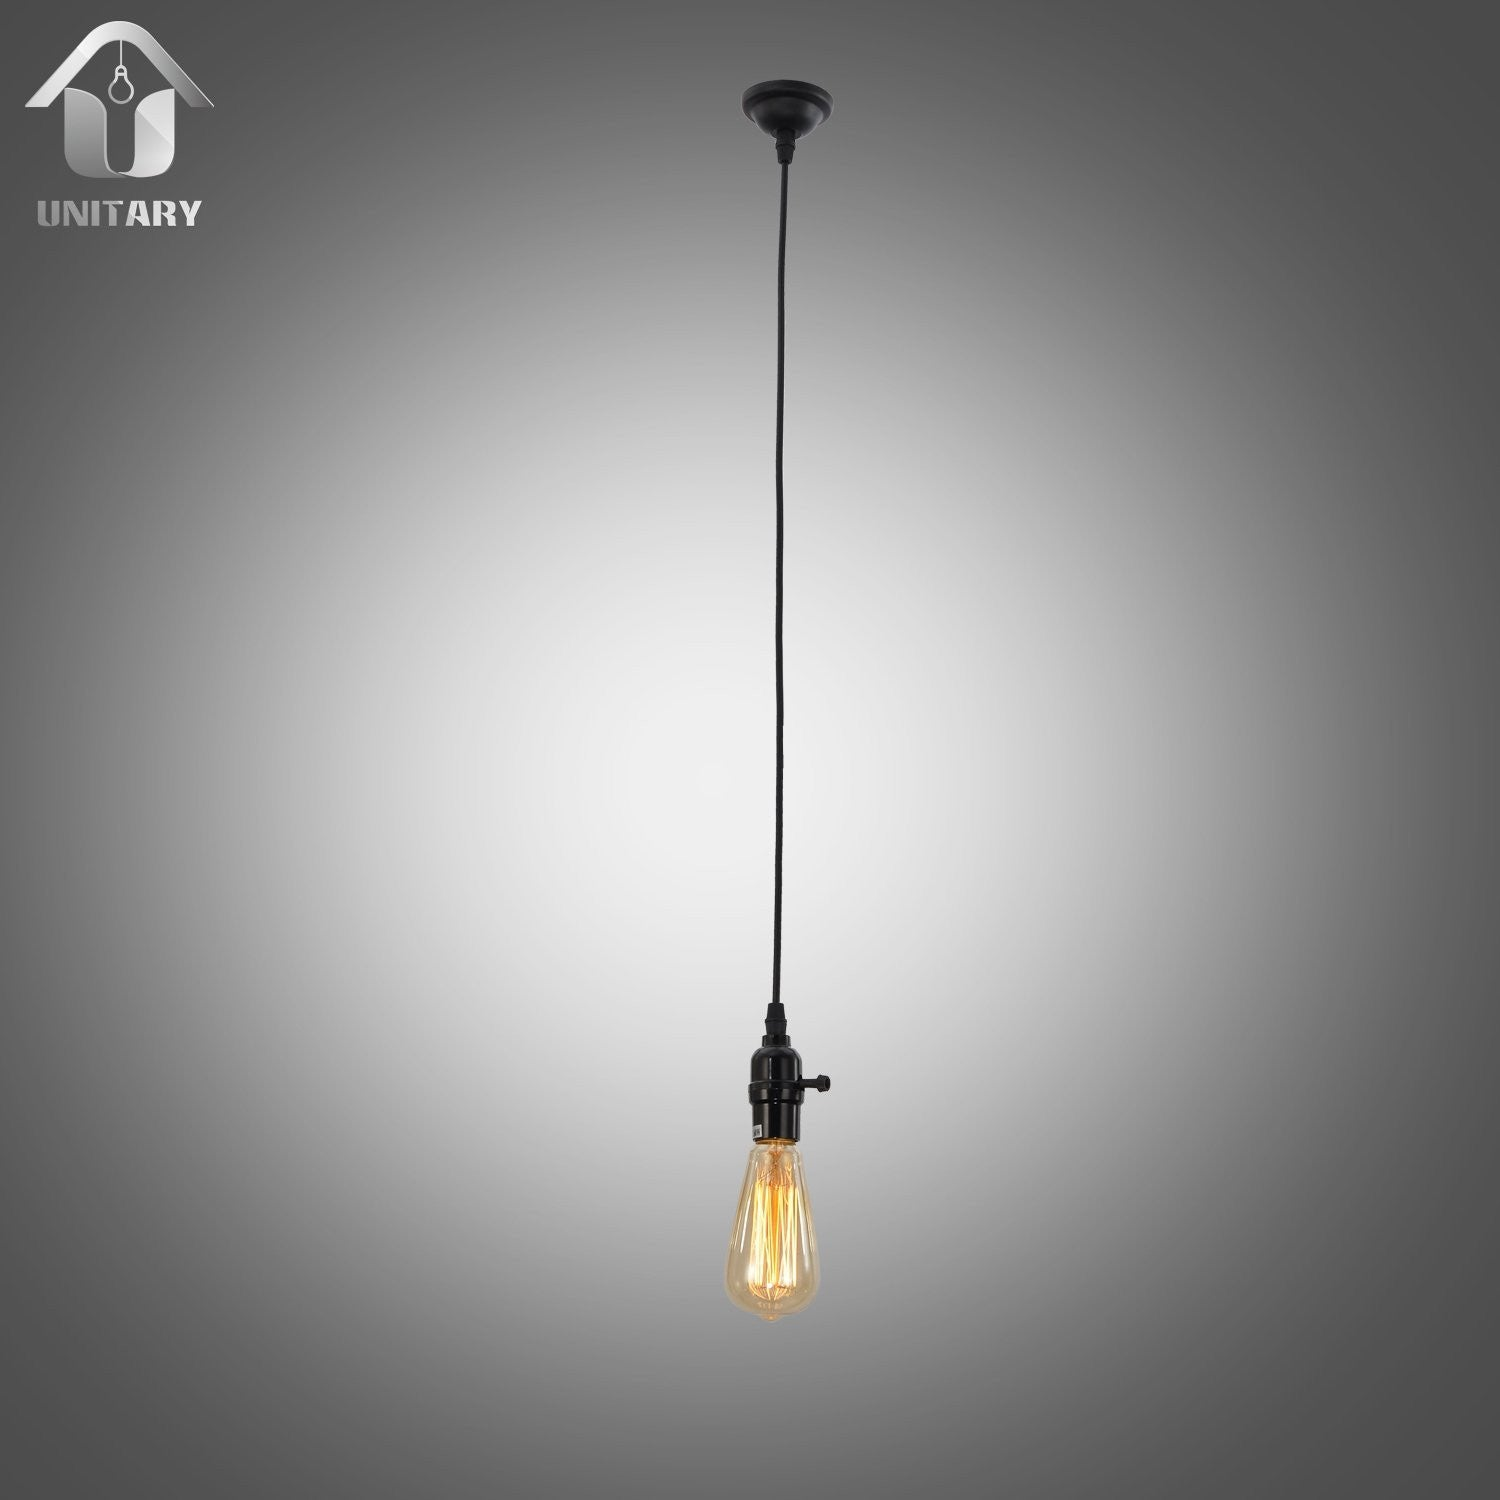 UNITARY BRAND Vintage Mini Pendant Light Max 60W with 1 light Painted Finish